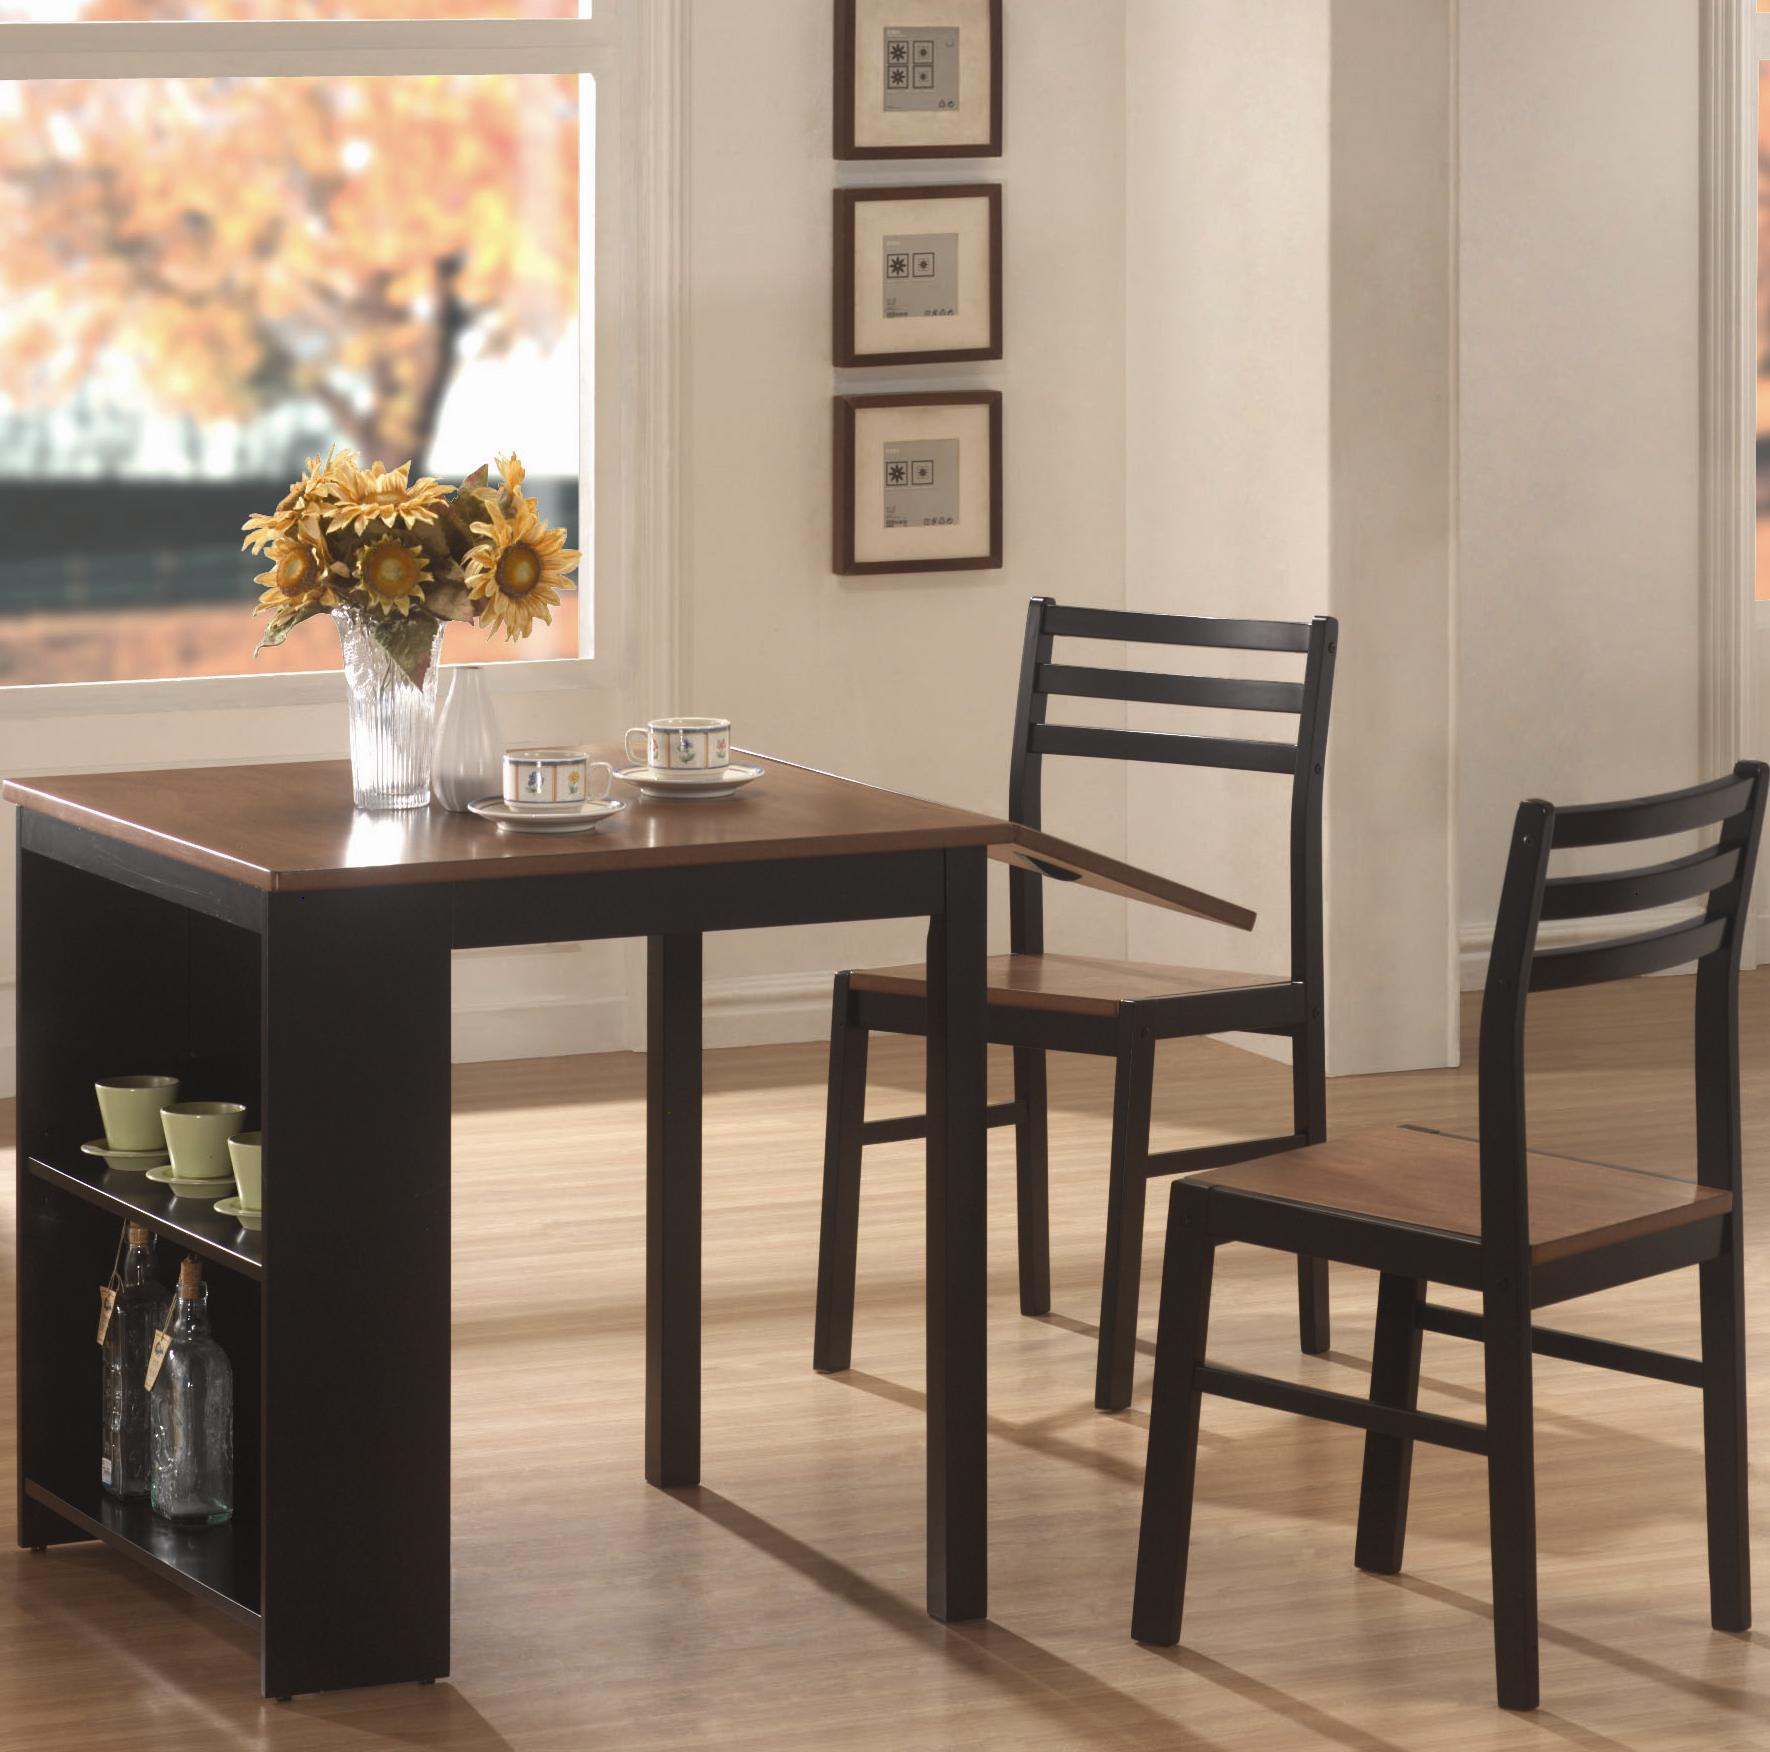 1770x1752px 7 Stunning Breakfast Nook Dining Table Picture in Furniture